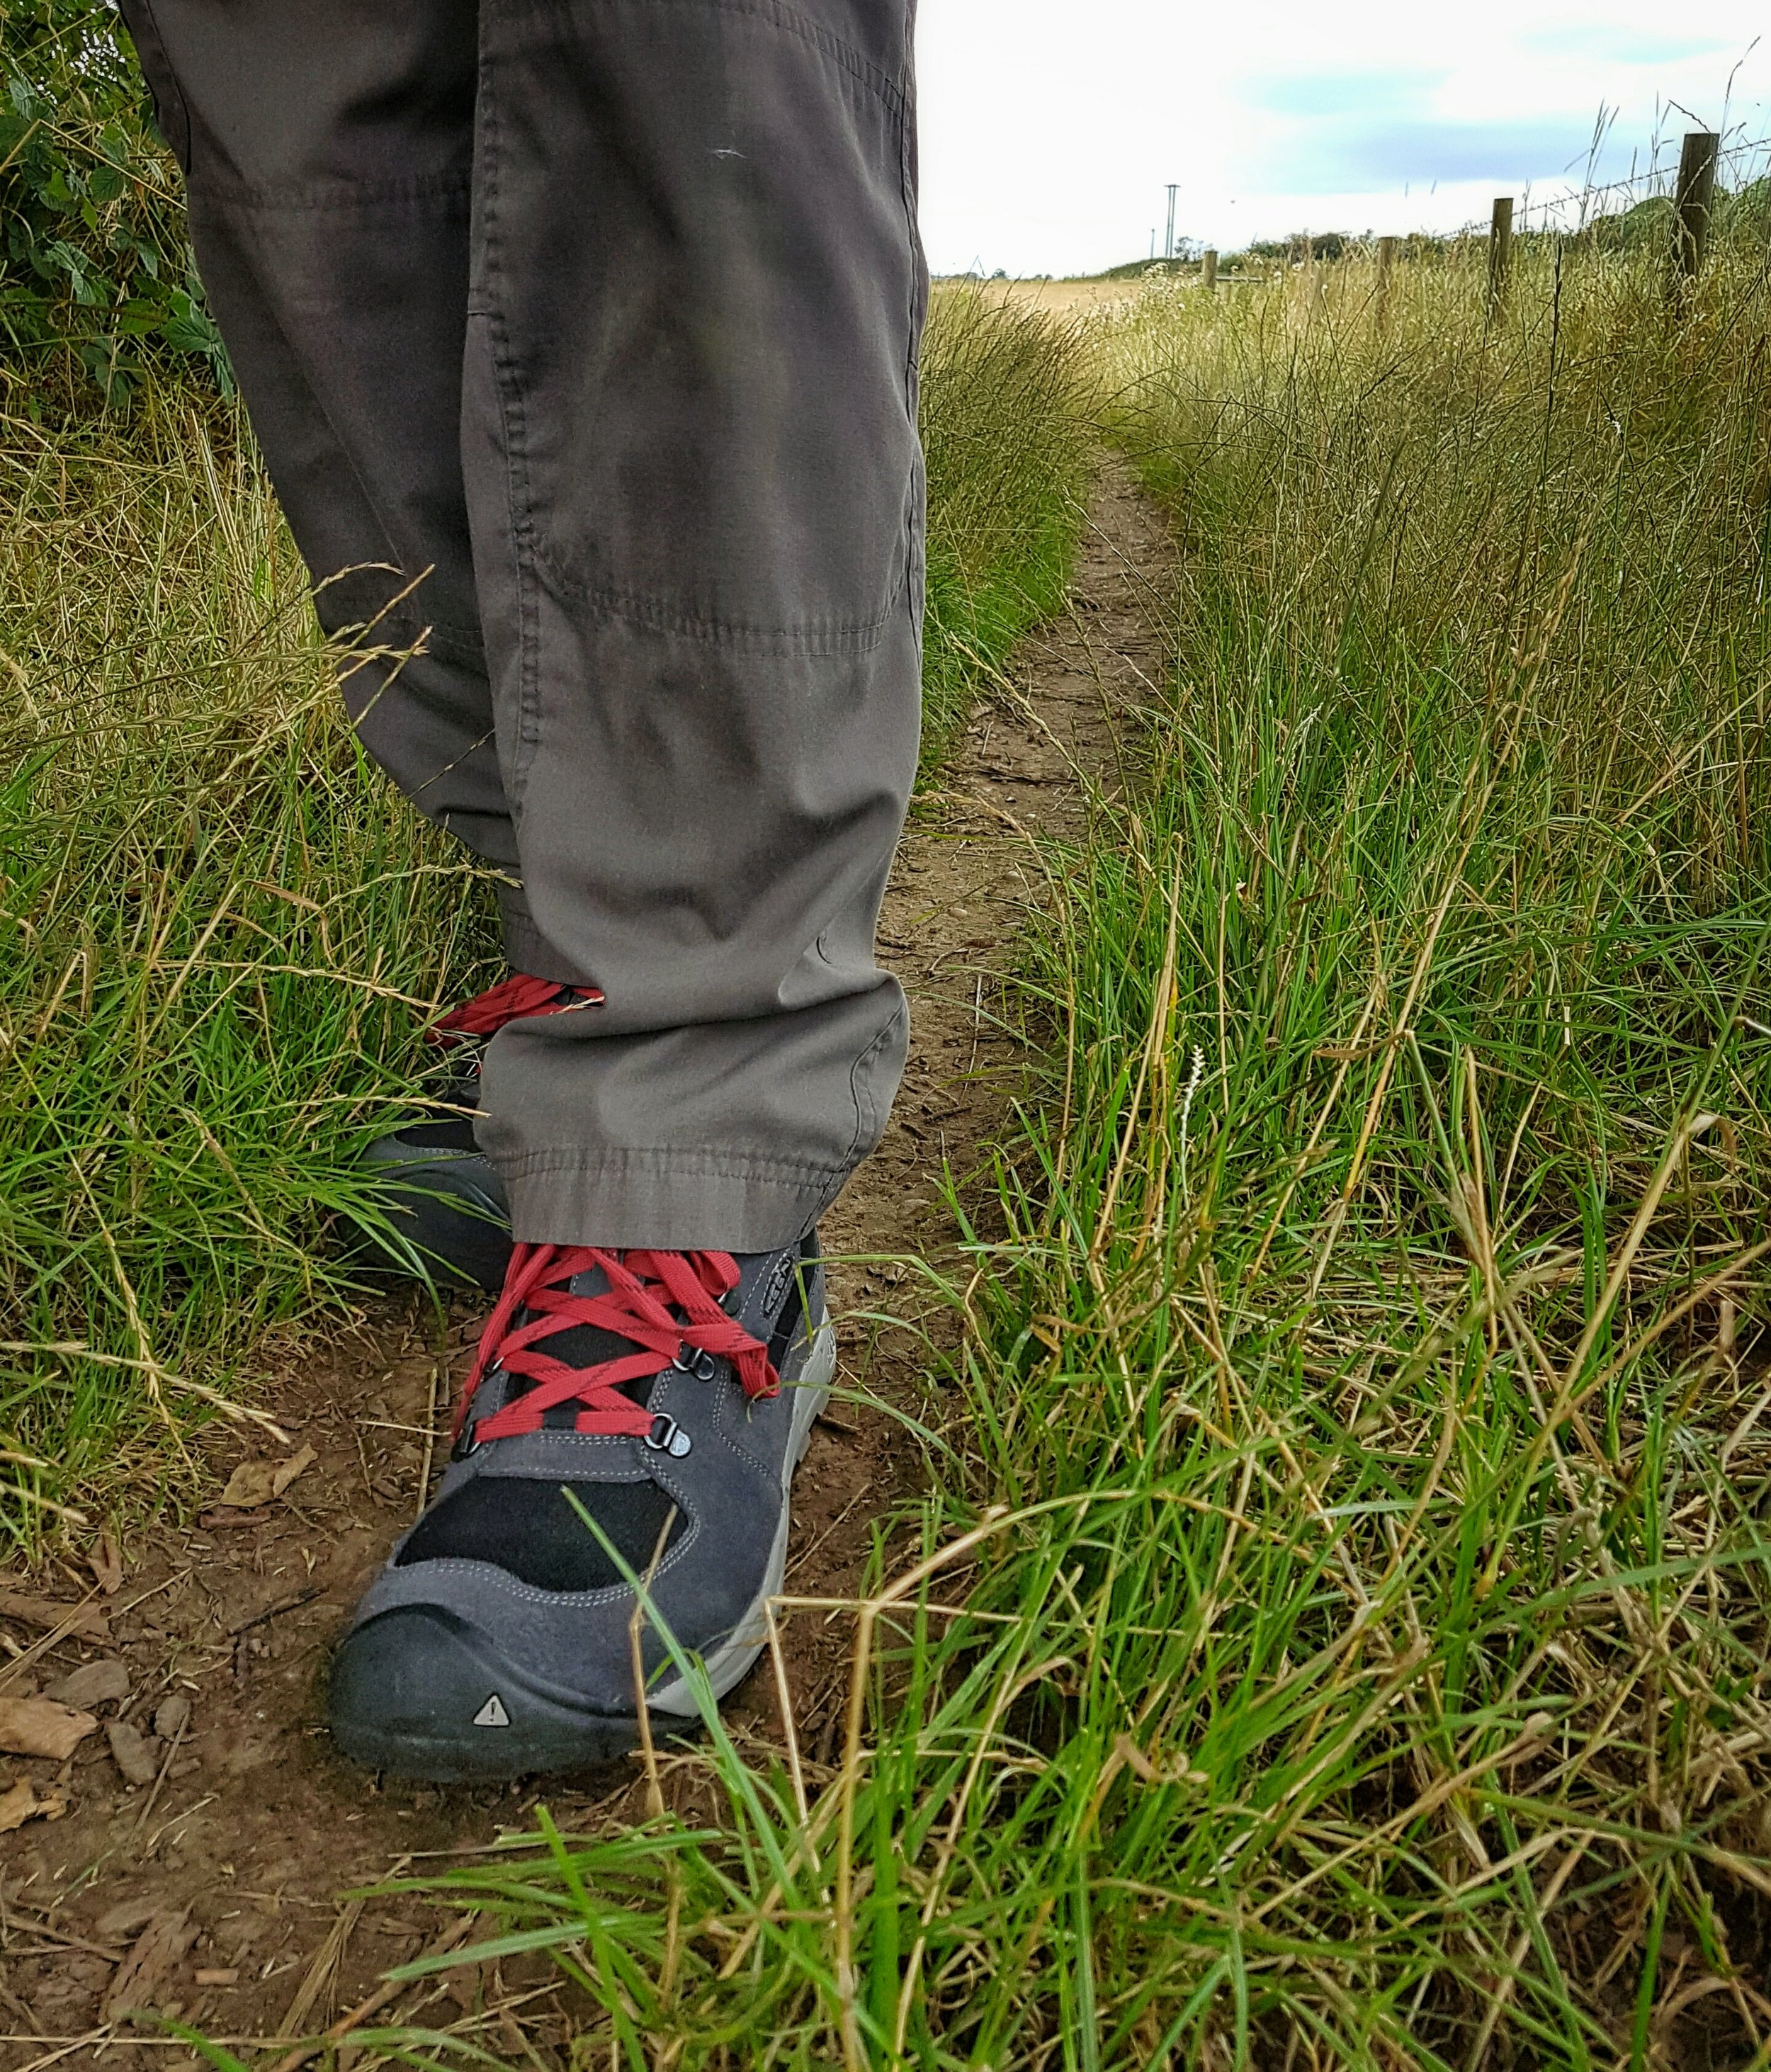 Walking along trails, sometimes with wet grass offered a great chance to test the waterproofing and durability of the boot.